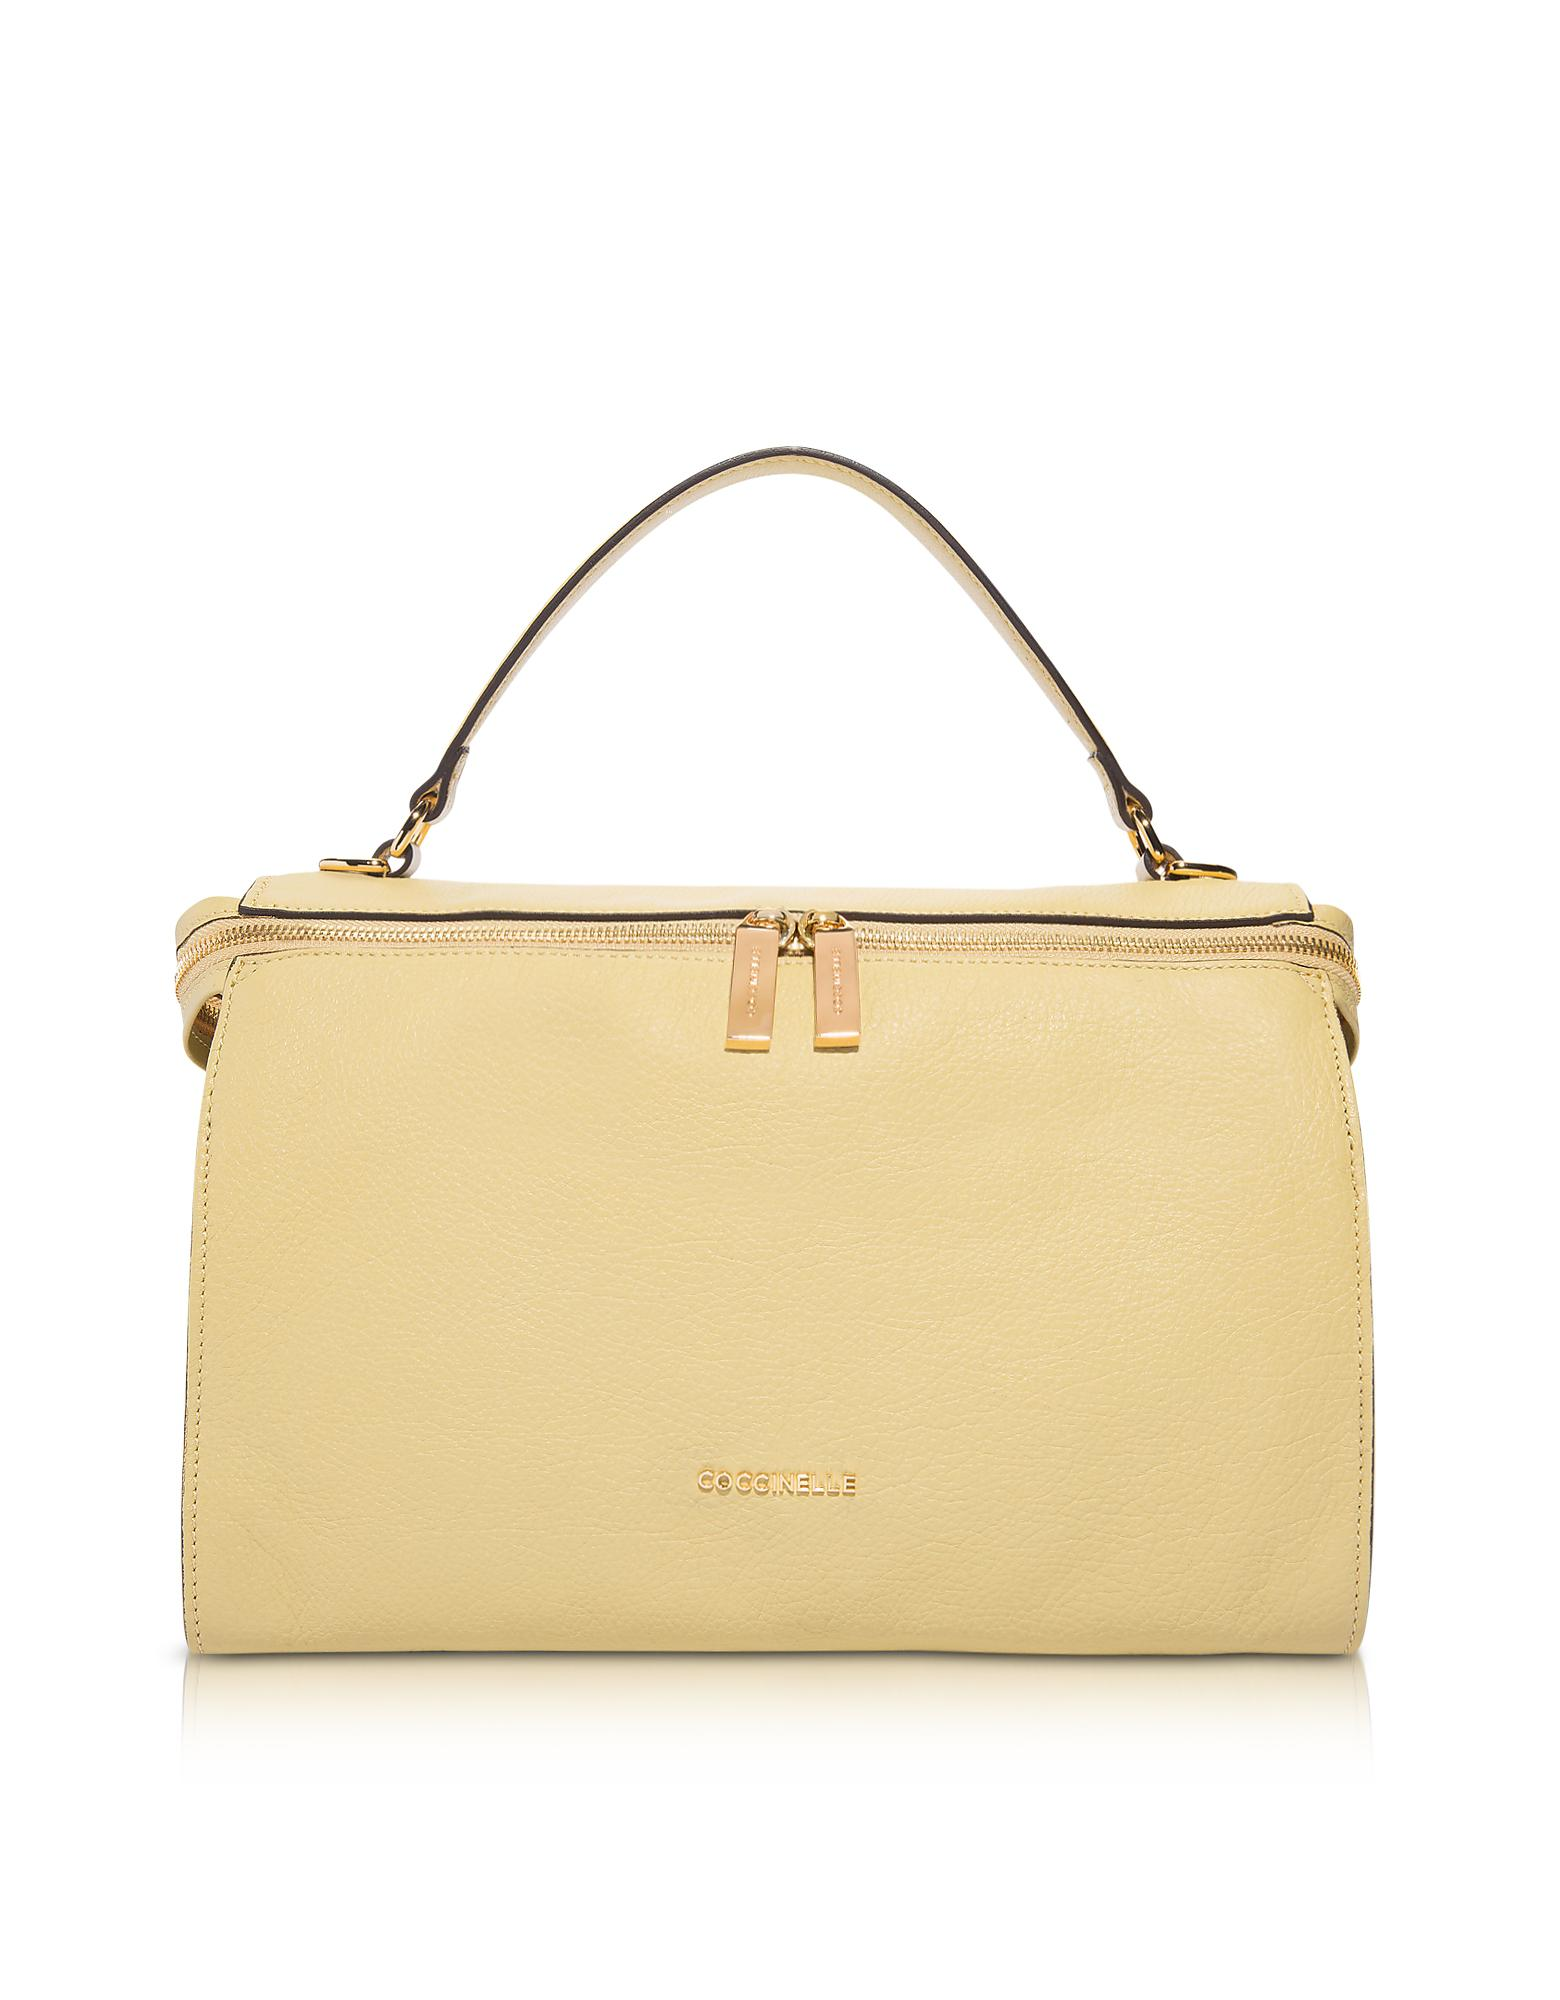 8d4f08e88a Coccinelle Atsuko Leather Satchel Bag in Yellow - Lyst